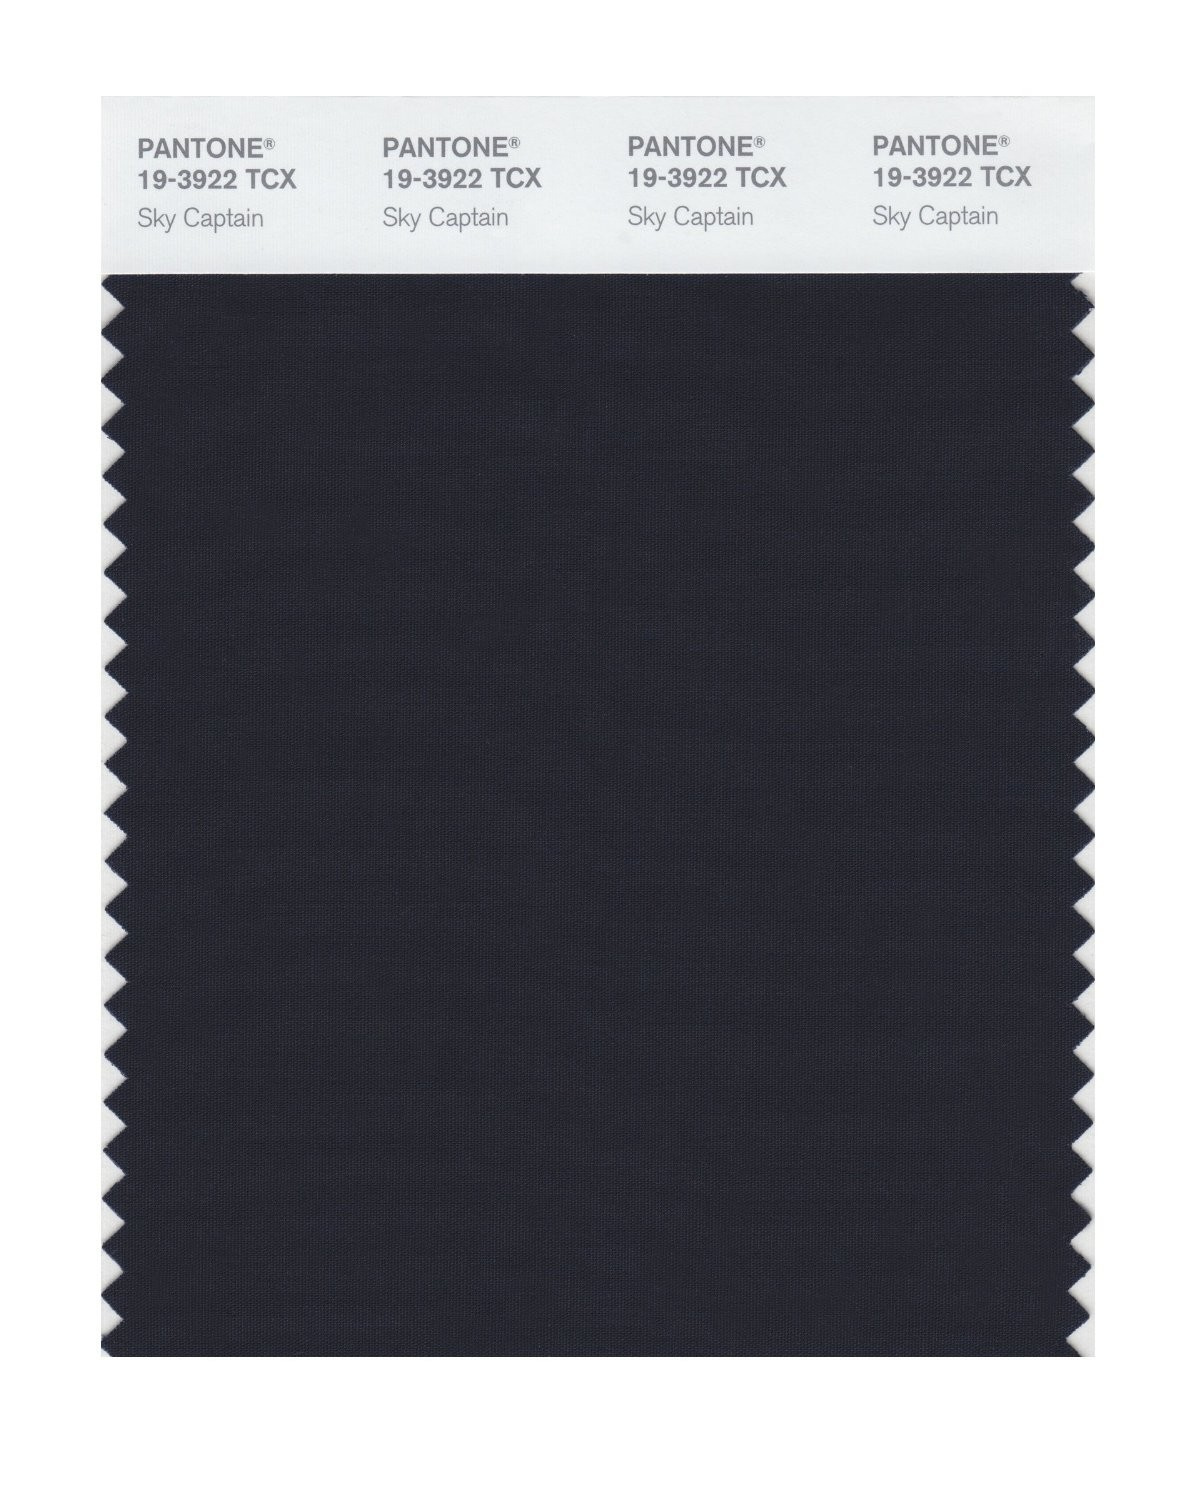 Pantone 19-3922 TCX Swatch Card Sky Captain